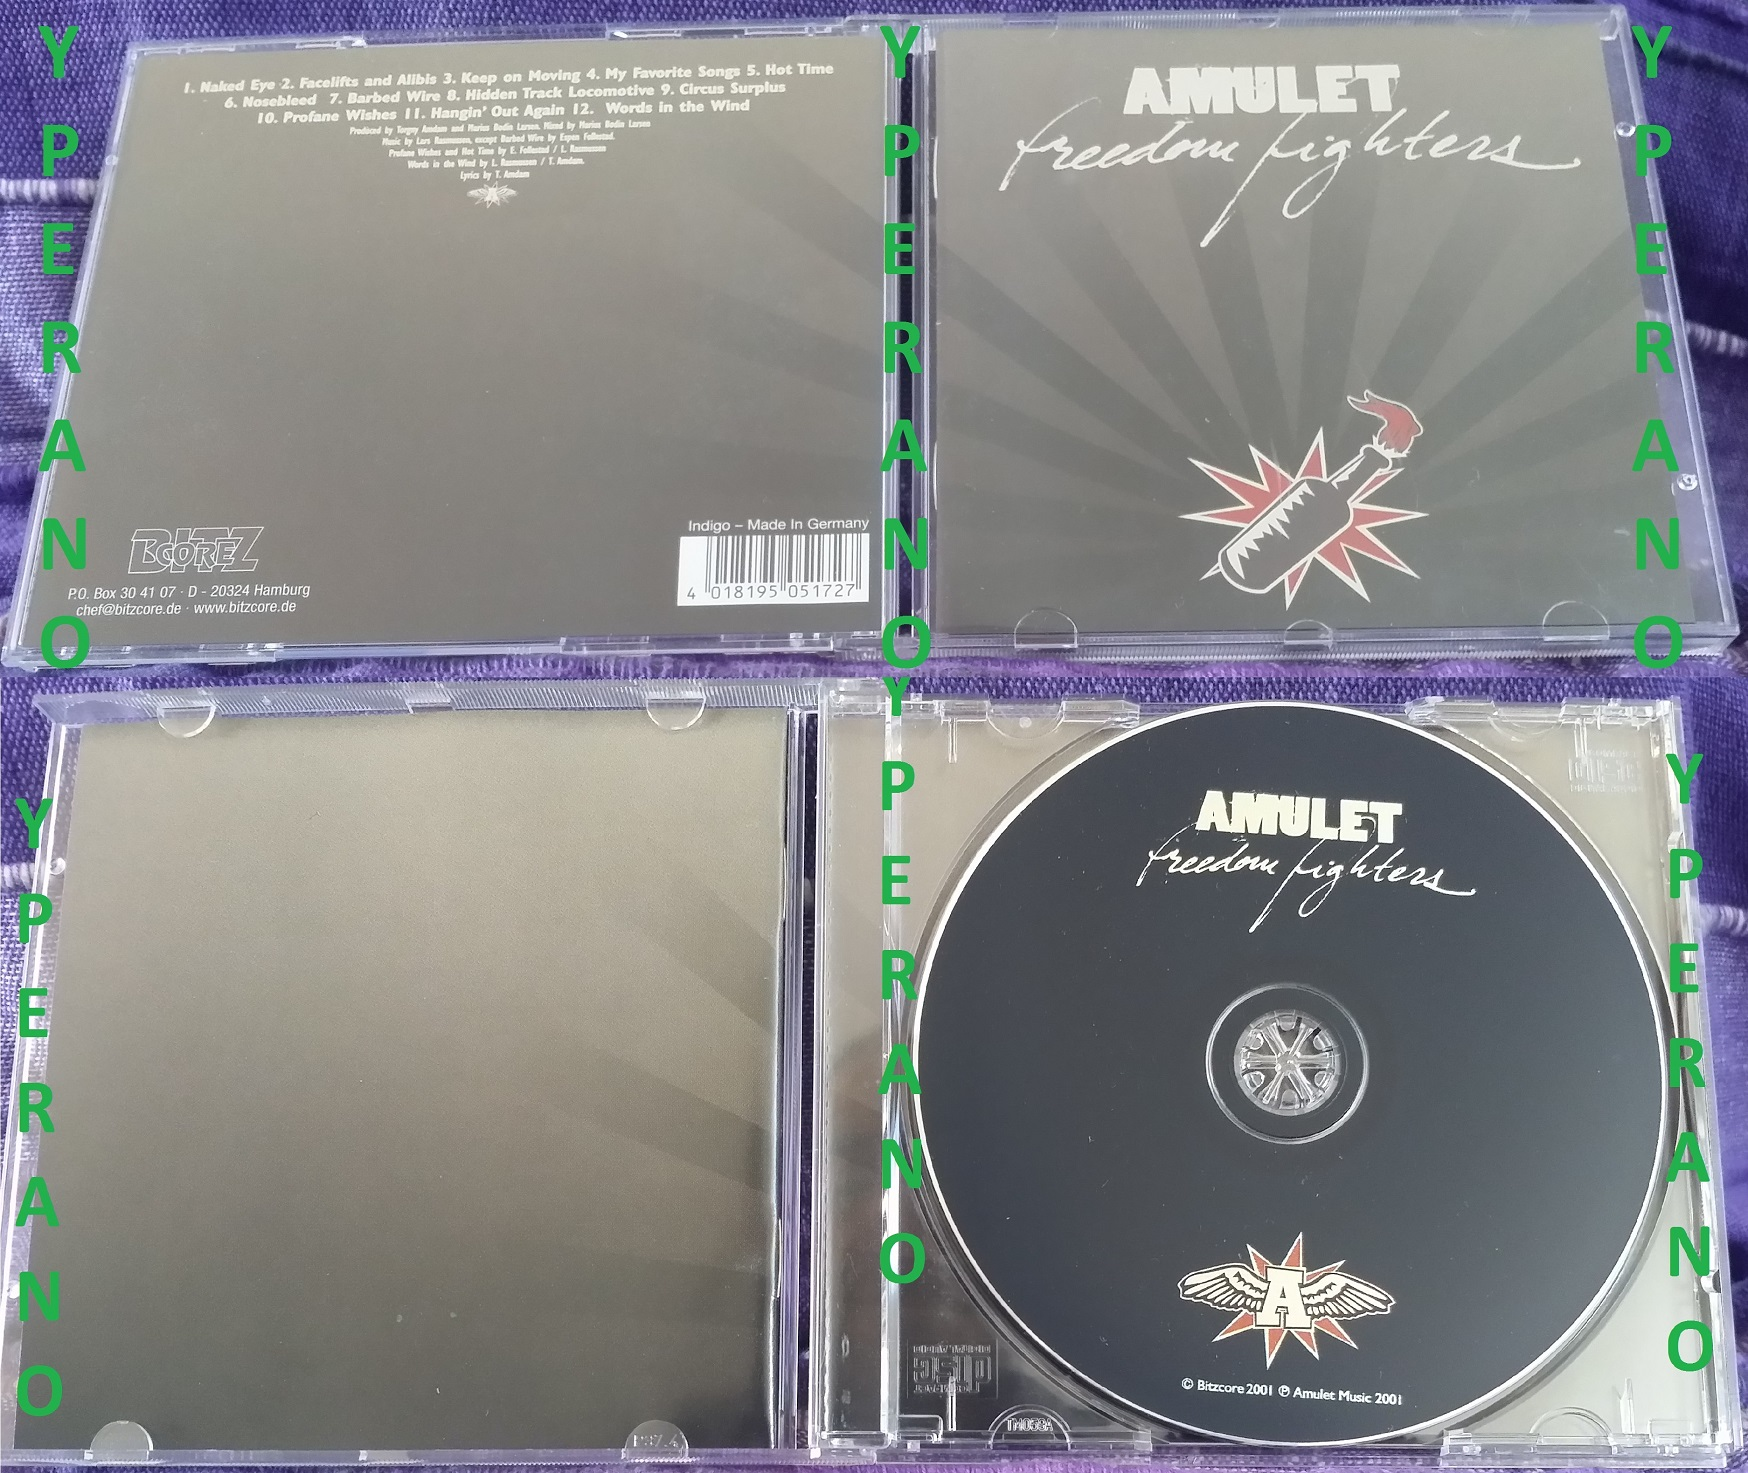 AMULET: Freedom Fighters CD  Best hardcore album since Feel The Darkness  (Poison Idea)  Check video and ALL audio samples